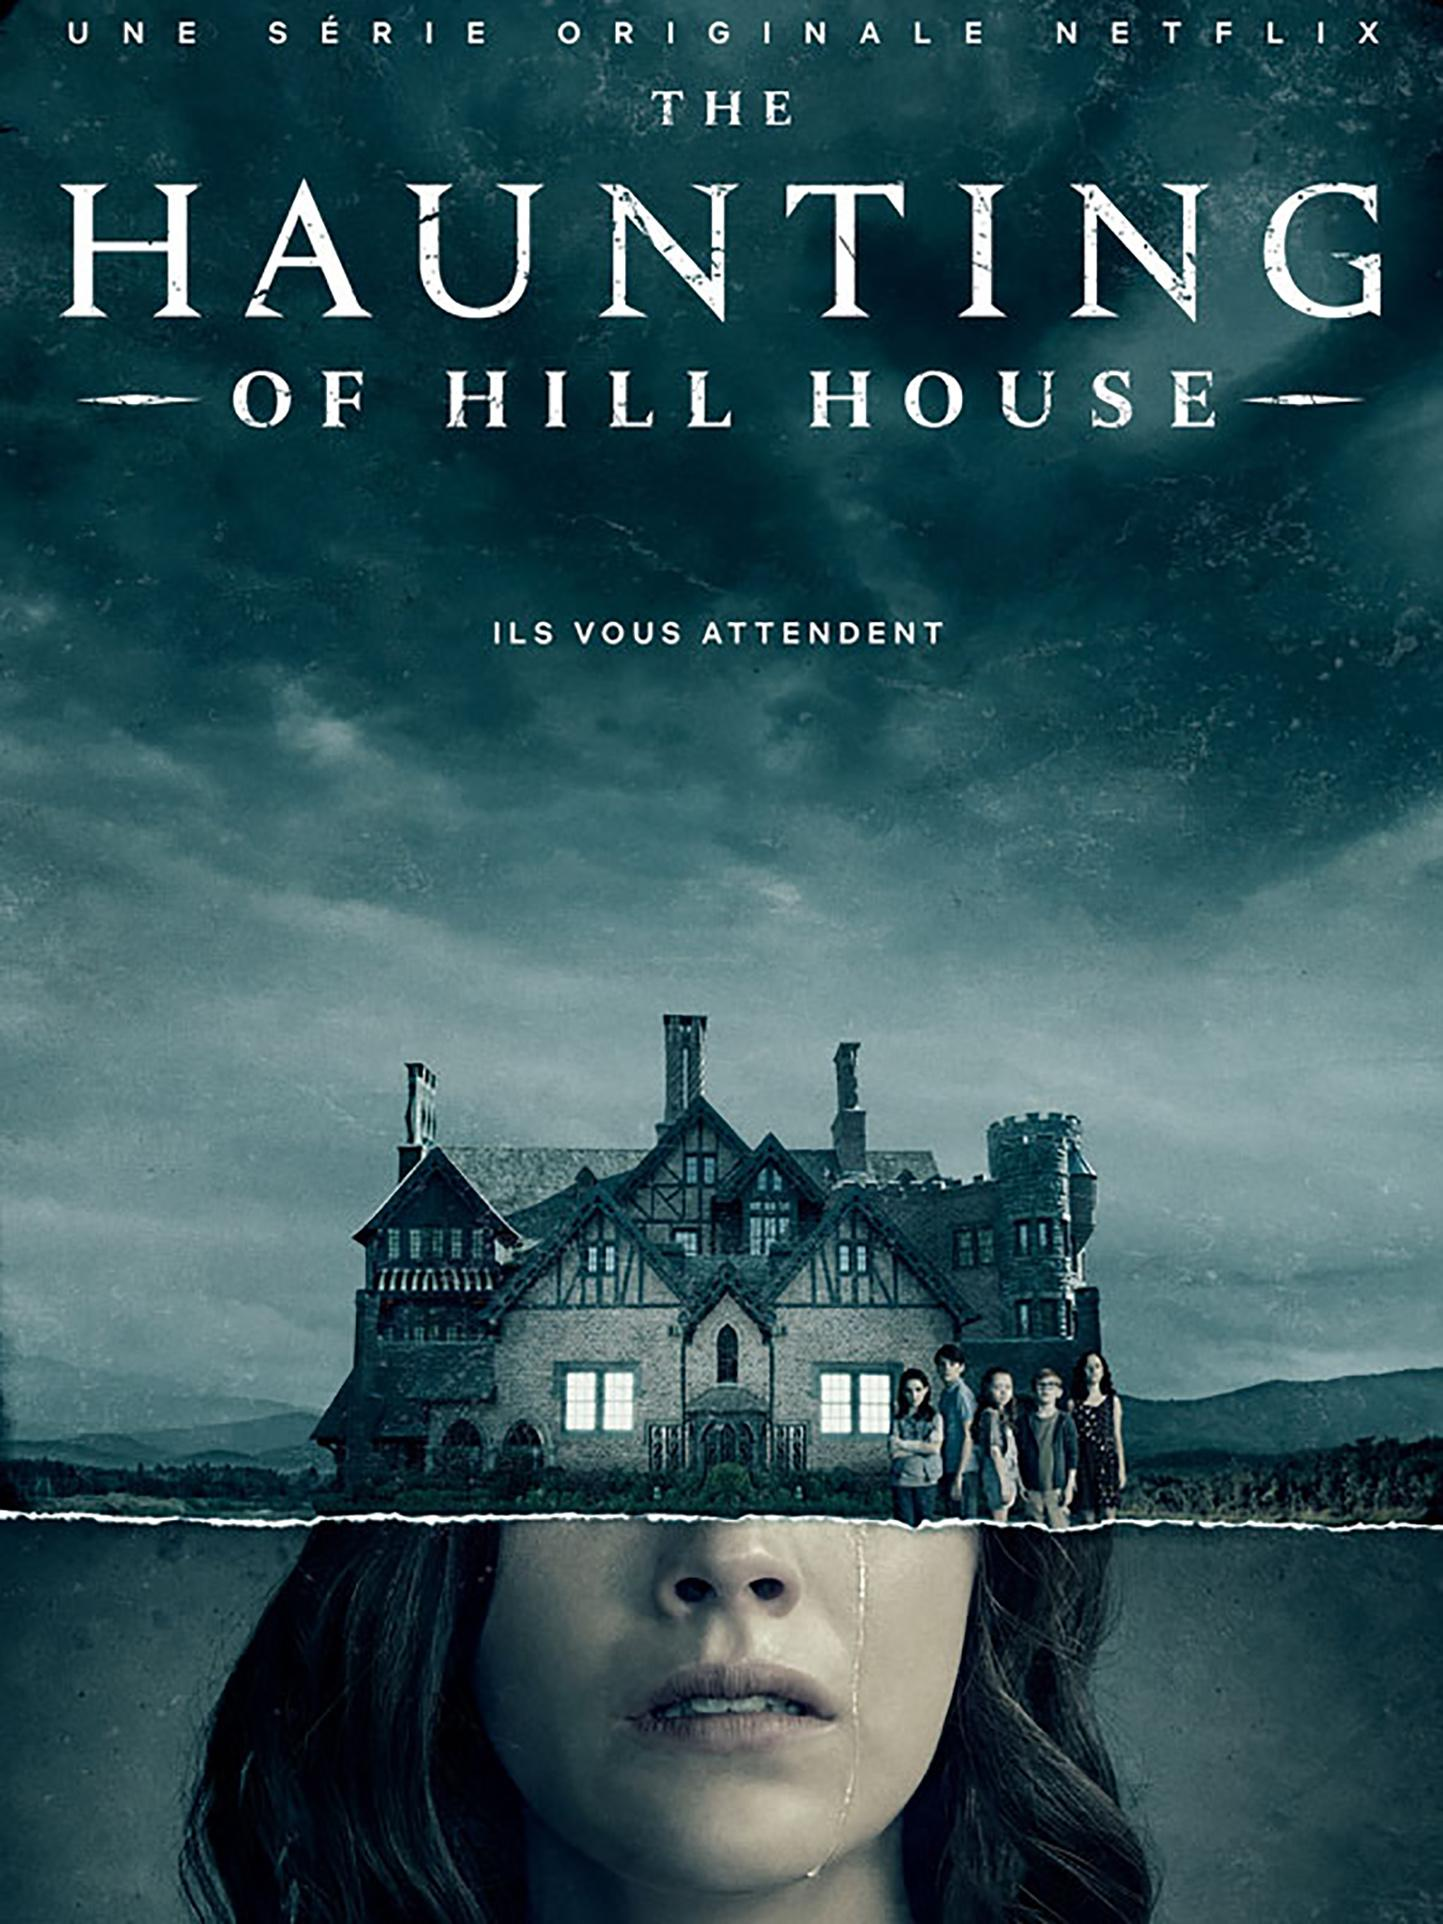 The Haunting Of Hill House Goes To Bly Manor In Season 2